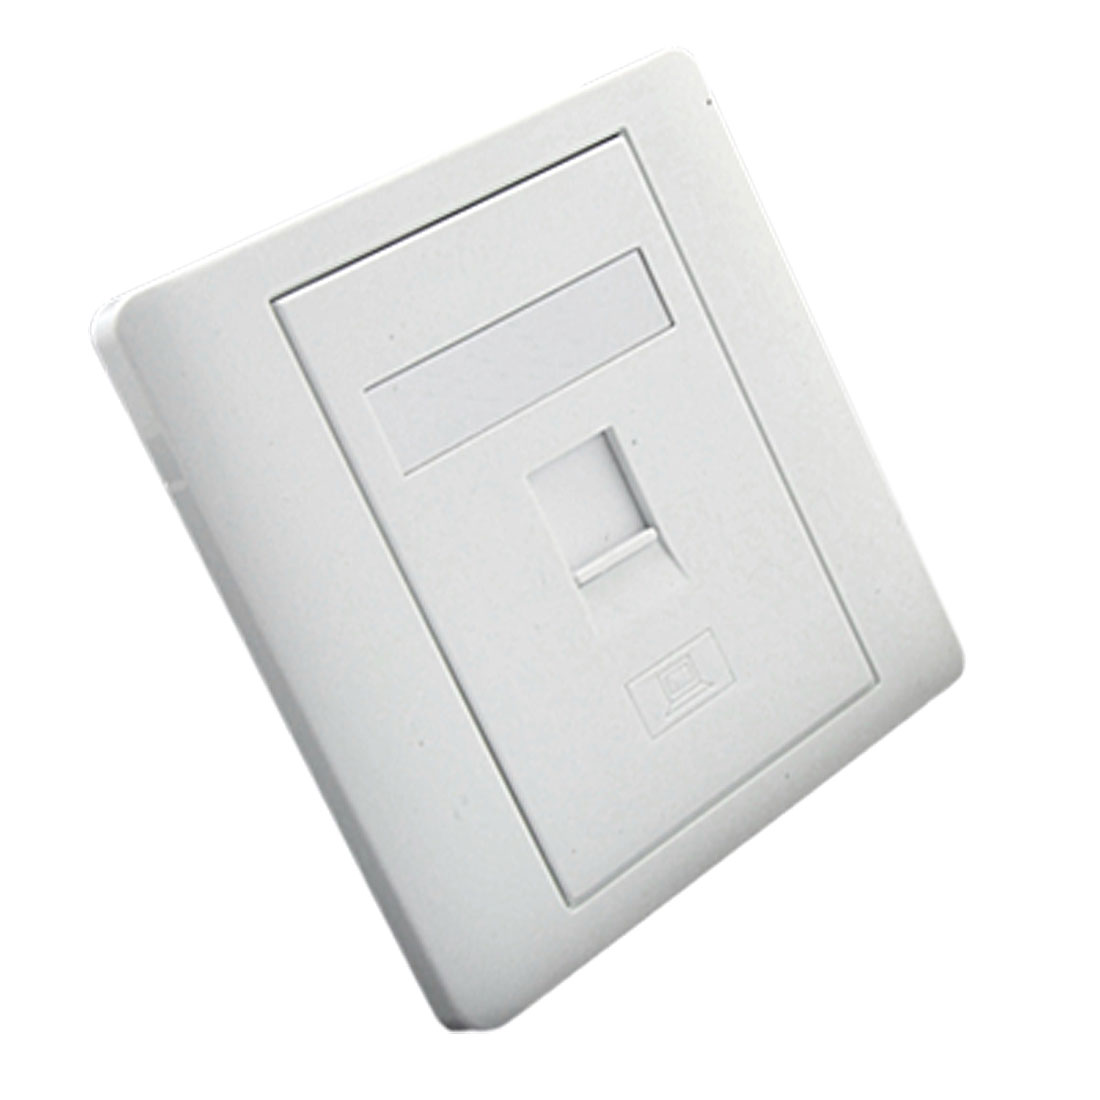 Single 1 Gang Cat5 RJ45 Socket Outlet Wallplate Wall Plate Panel